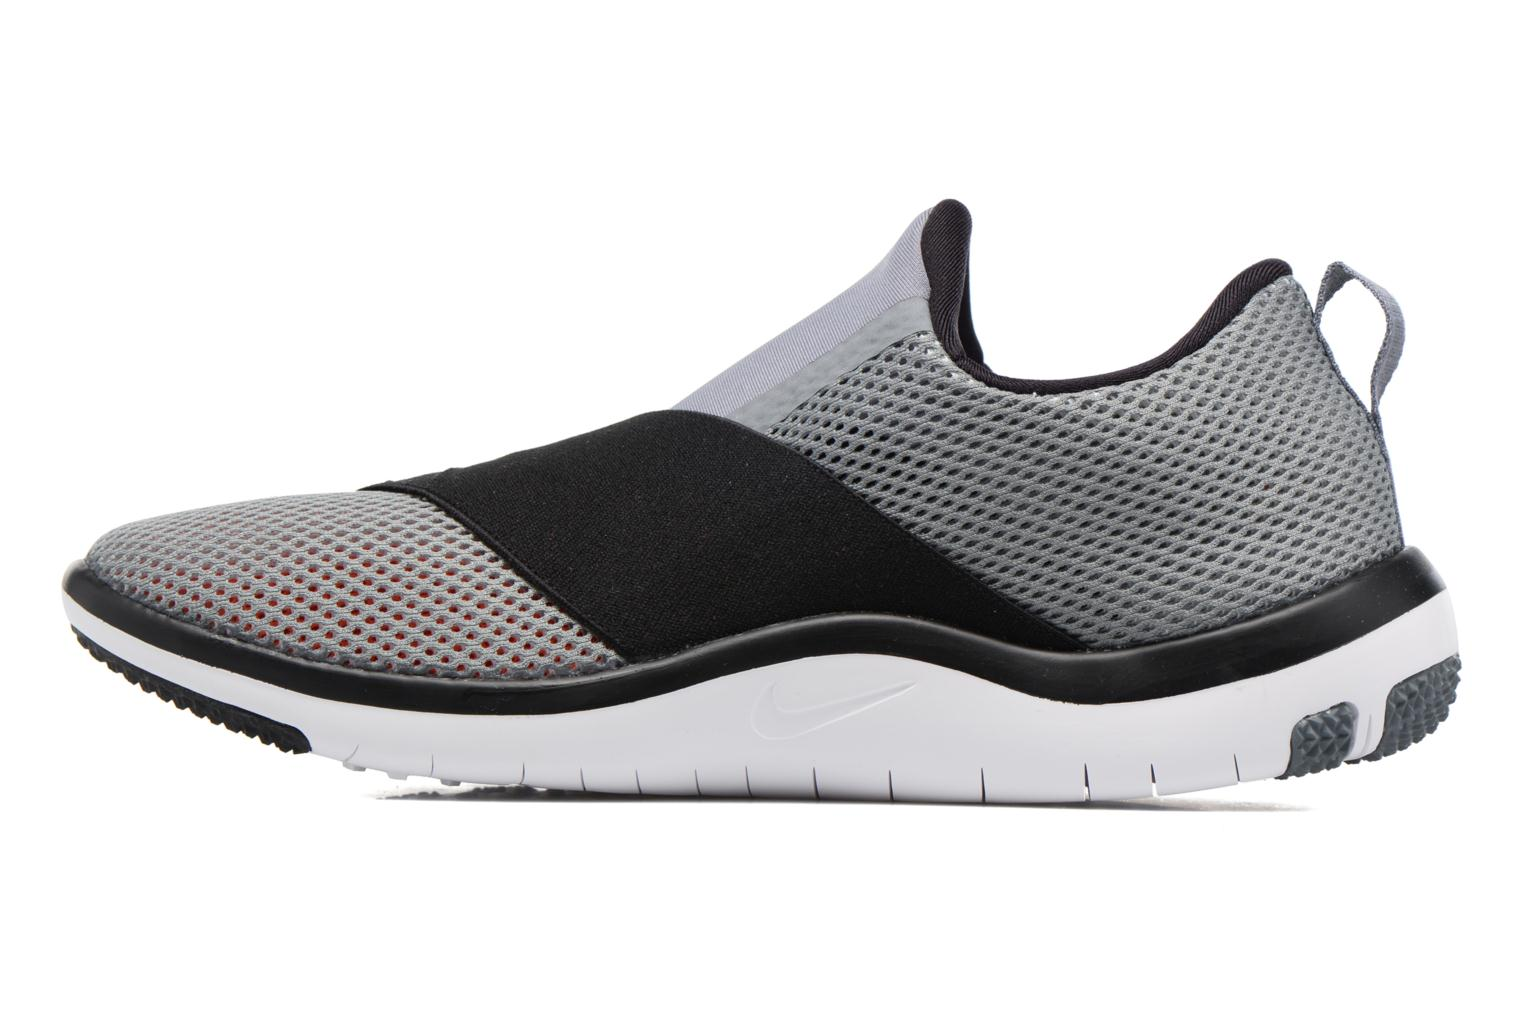 Wmns Nike Free Connect Cool Grey/Black-Pure Platinum-White